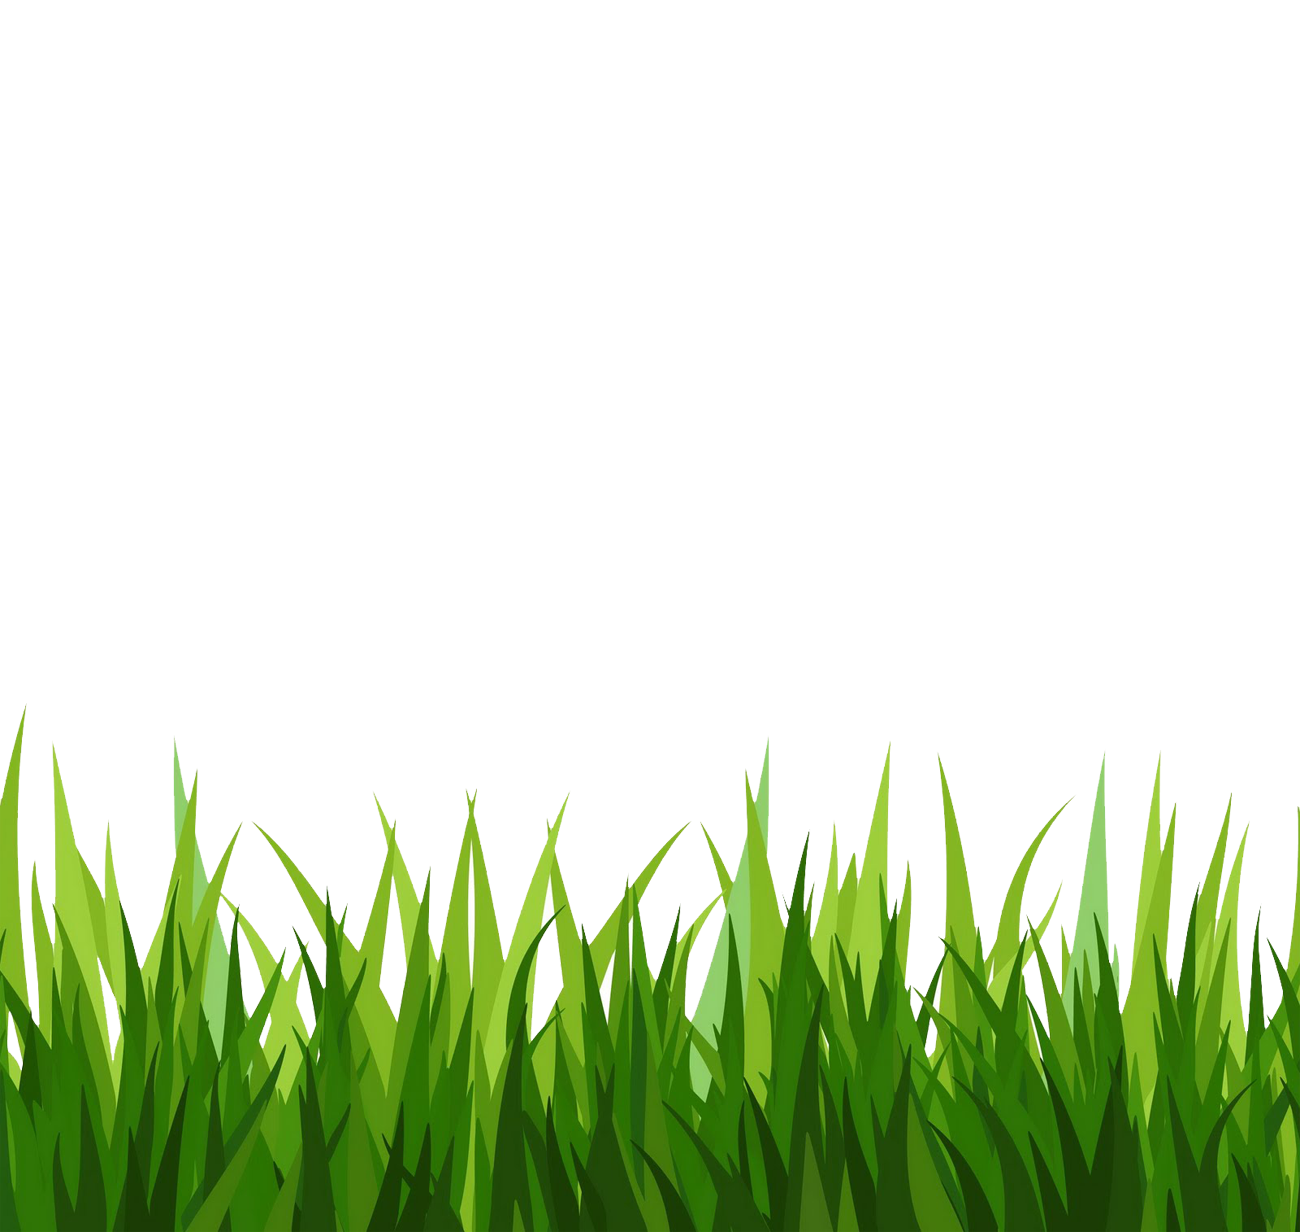 green grass clipart 44861 free icons and png backgrounds rh freeiconspng com green grass border clipart green grass clipart png